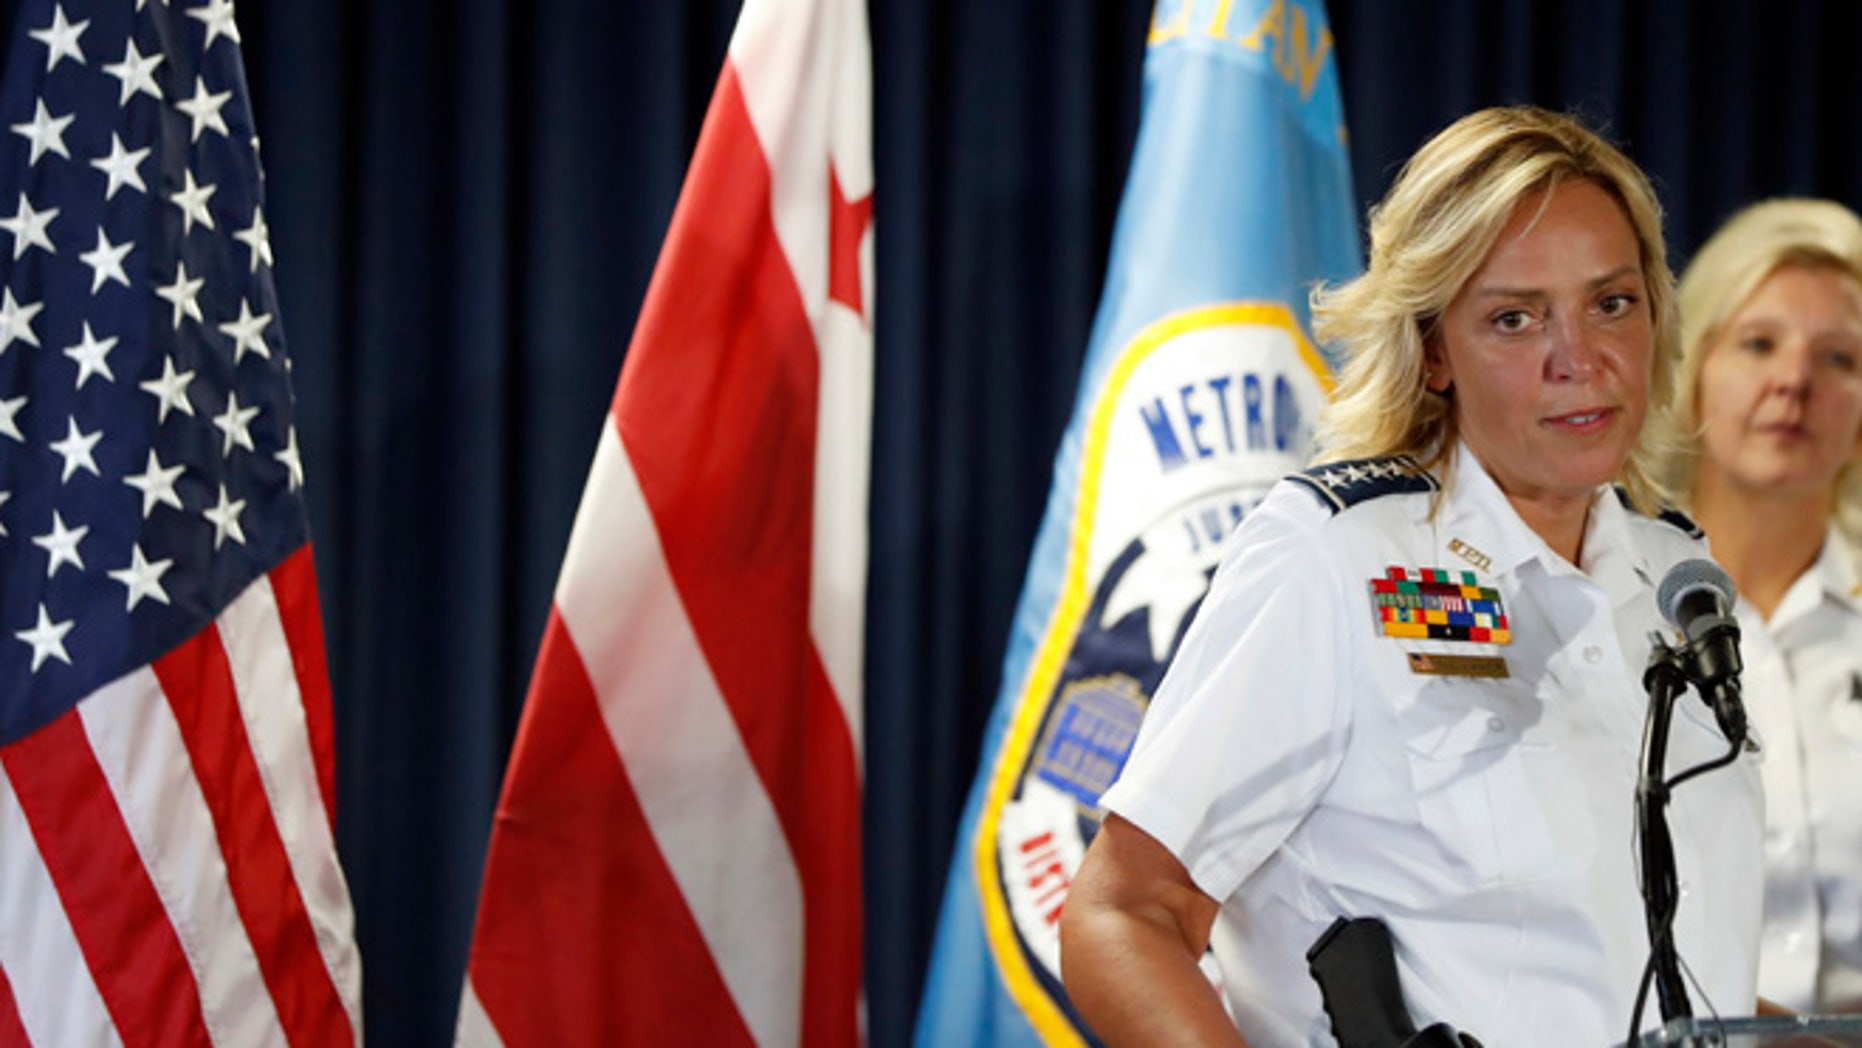 Washington police chief Cathy Lanier speaks during a news conference, Tuesday, Aug. 16, 2016 in Washington.